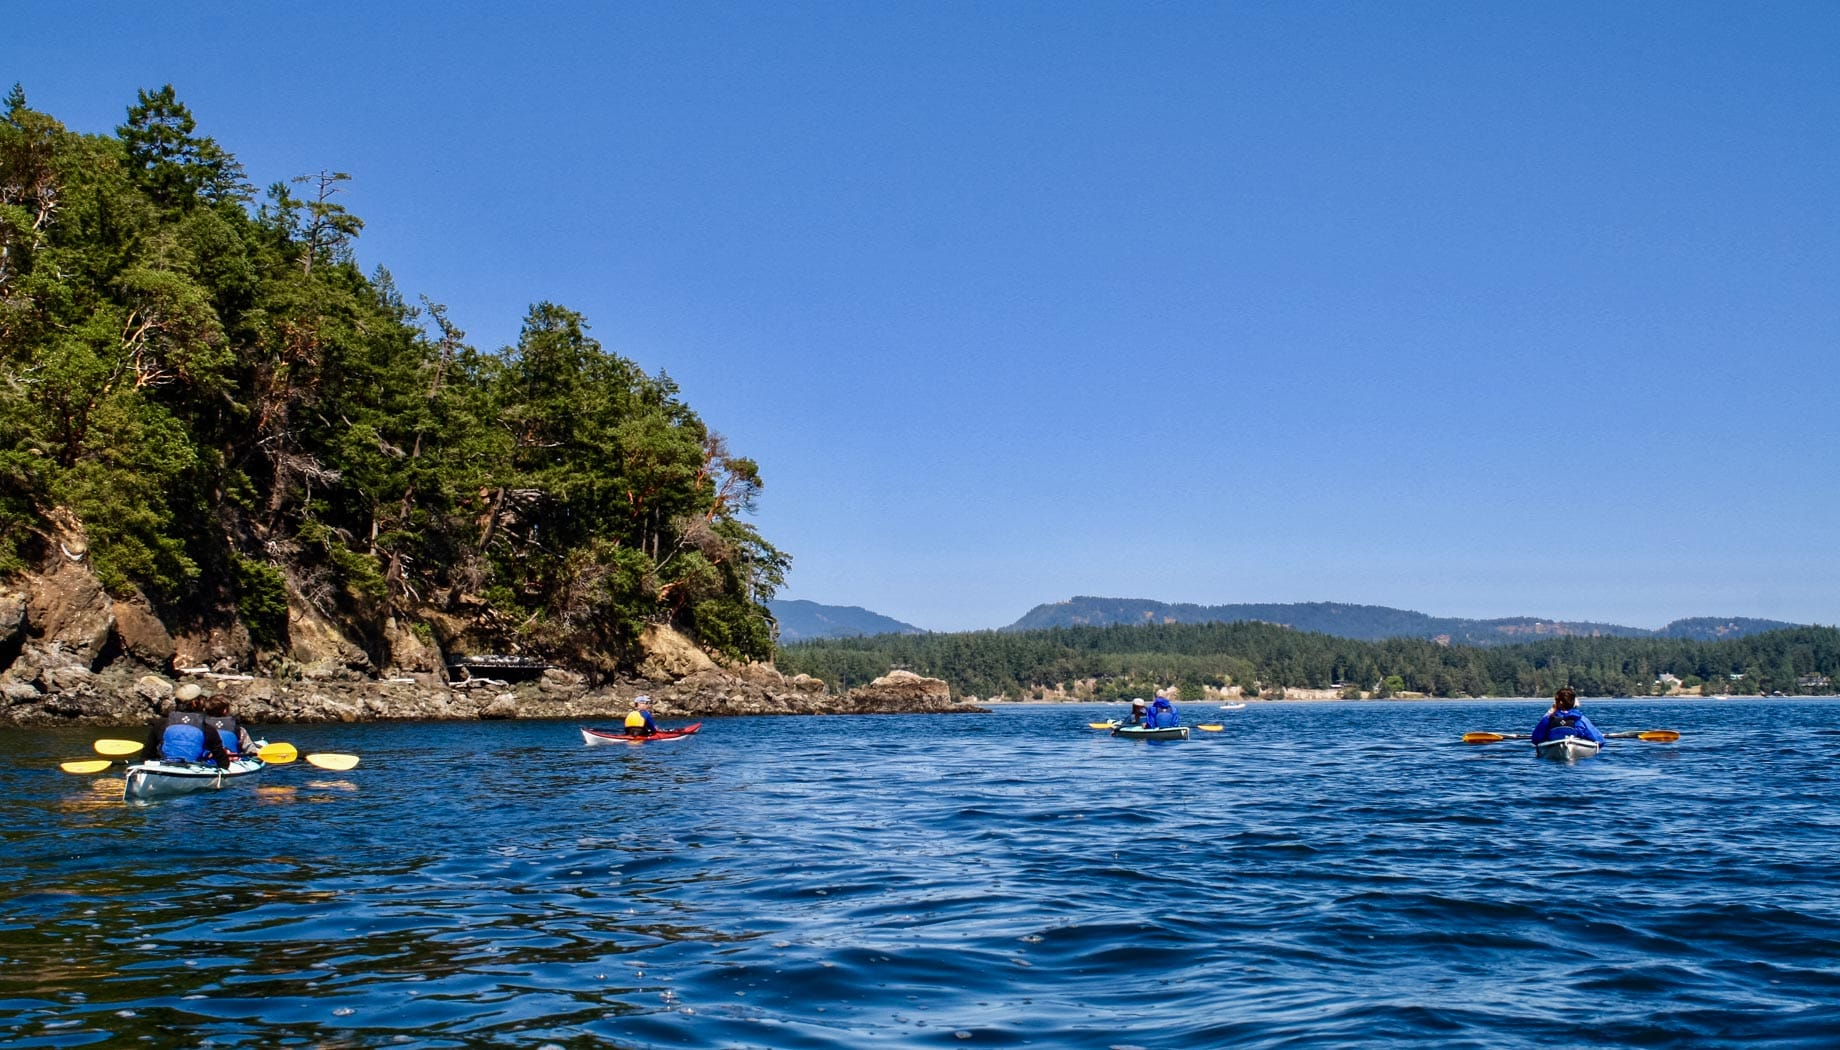 Boating on the Northwest Canada quest